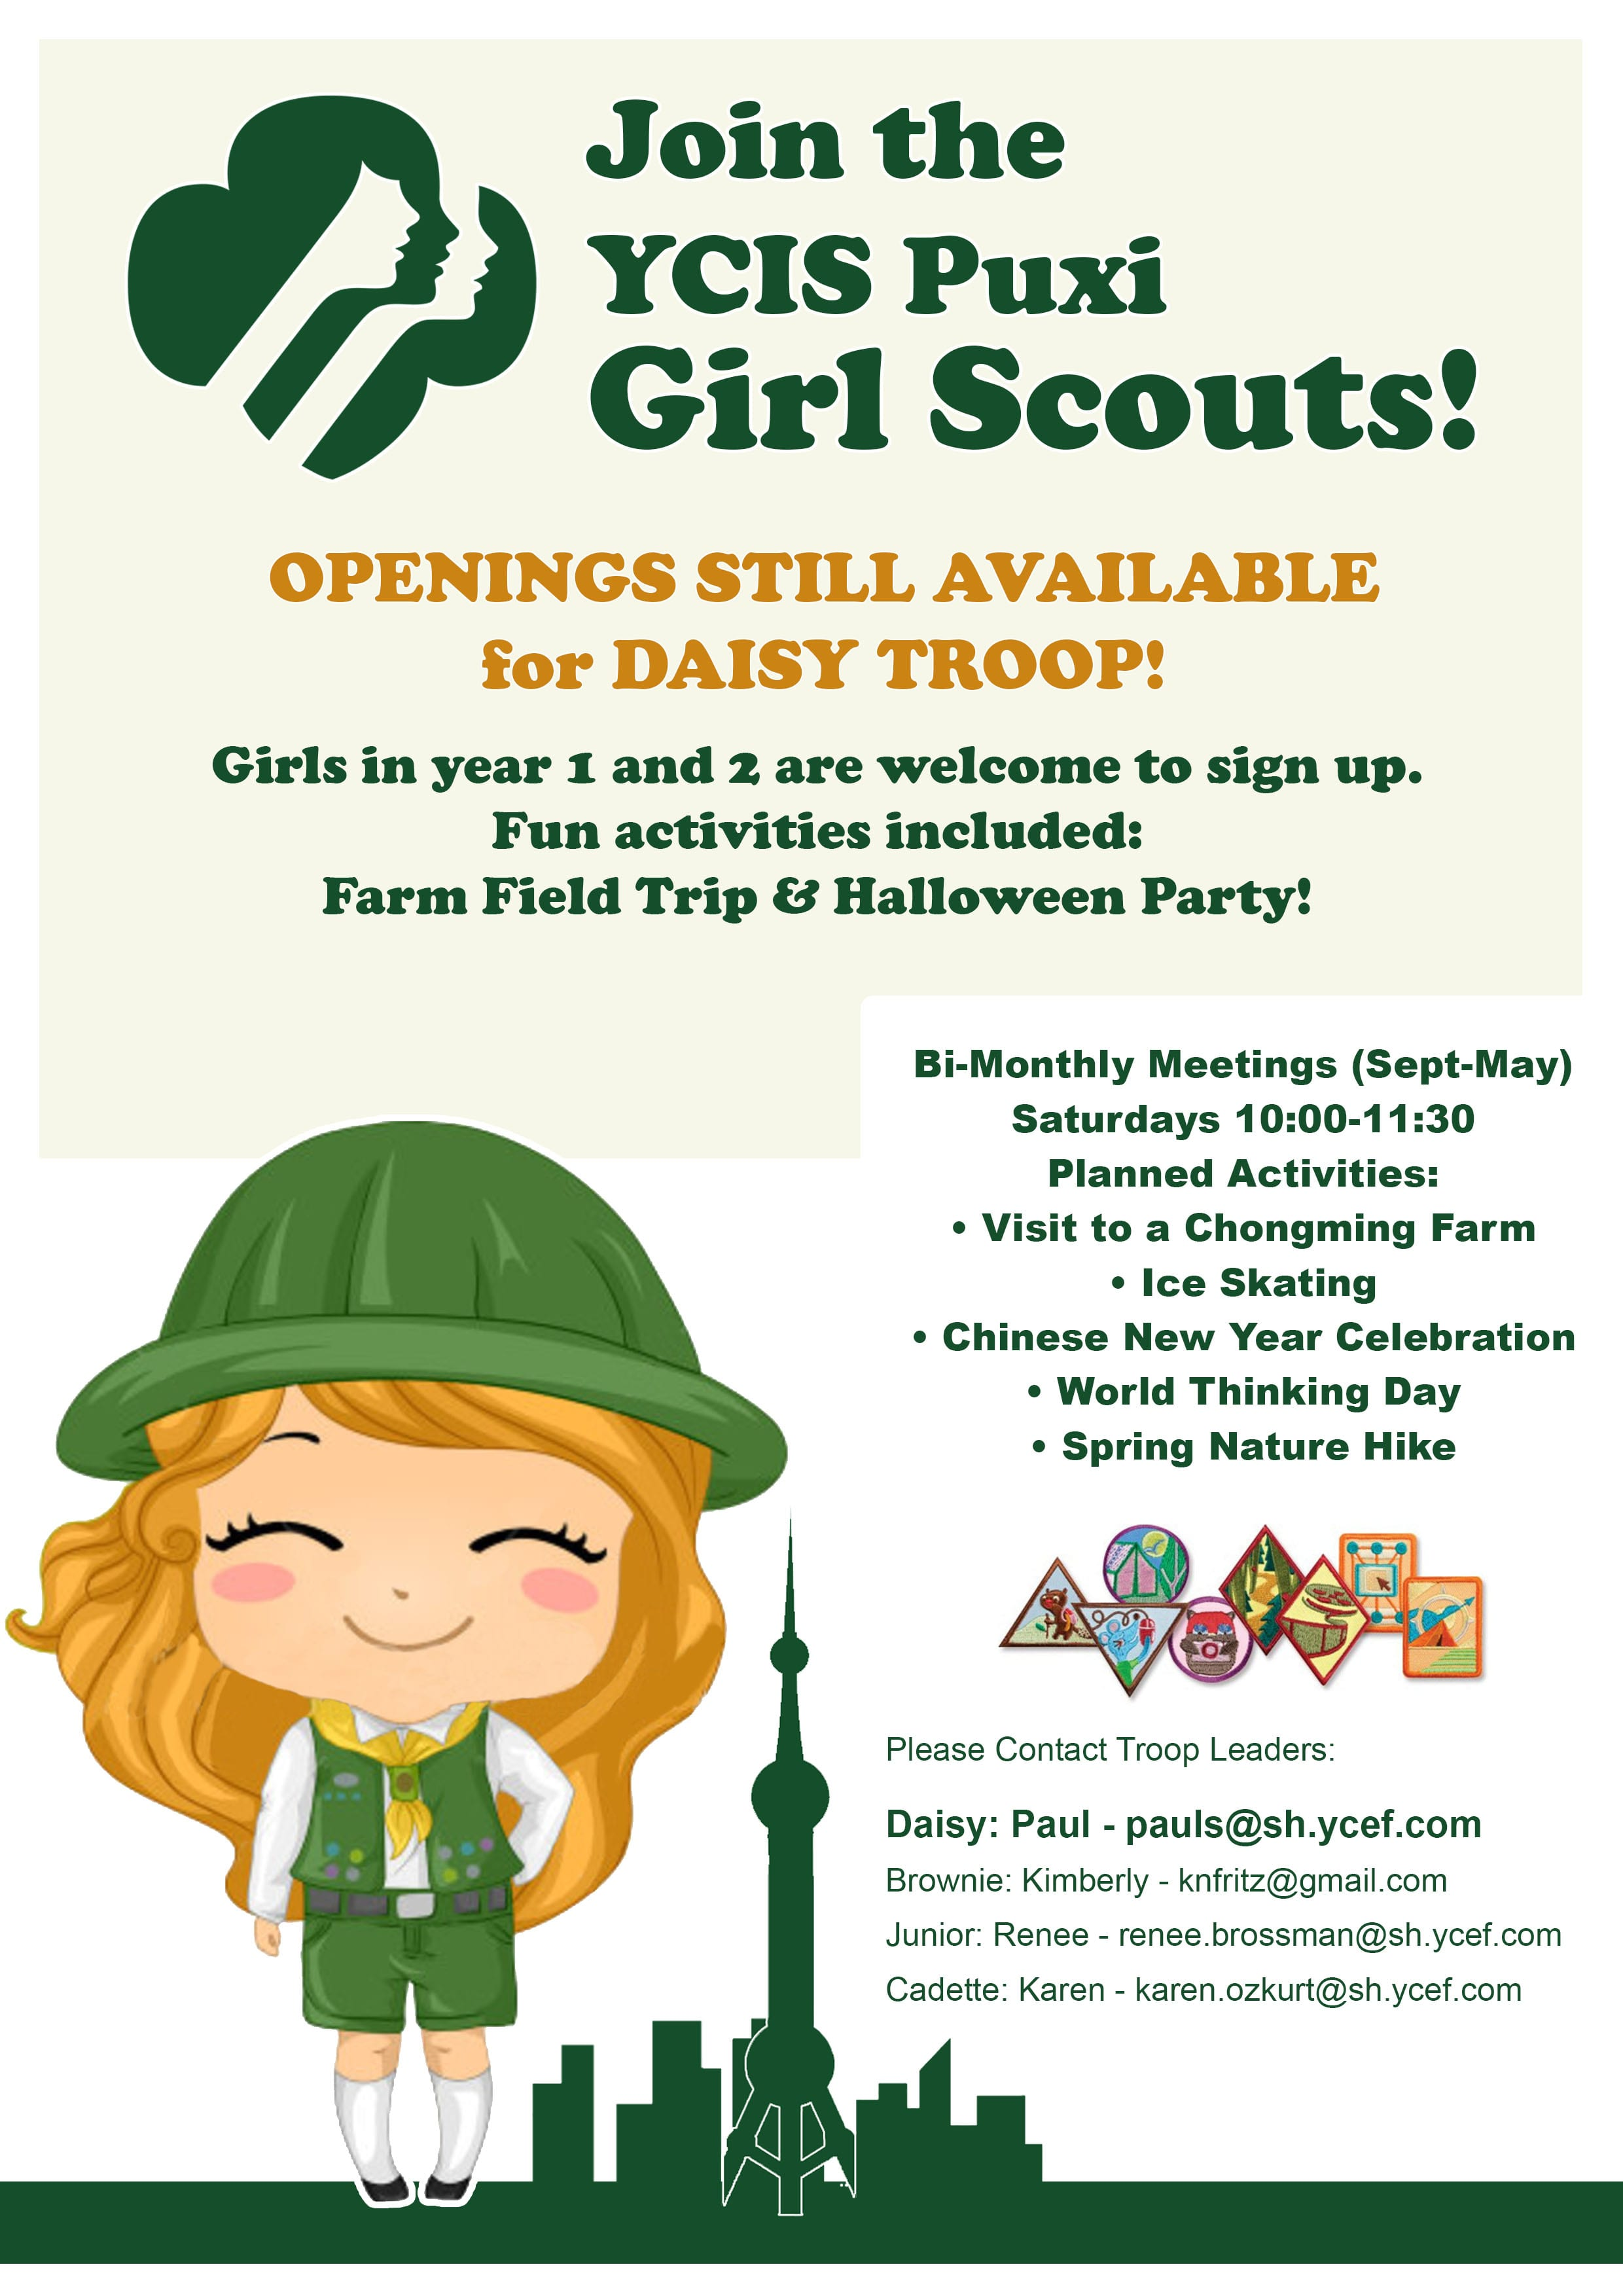 Ycis Puxi Girl Scouts